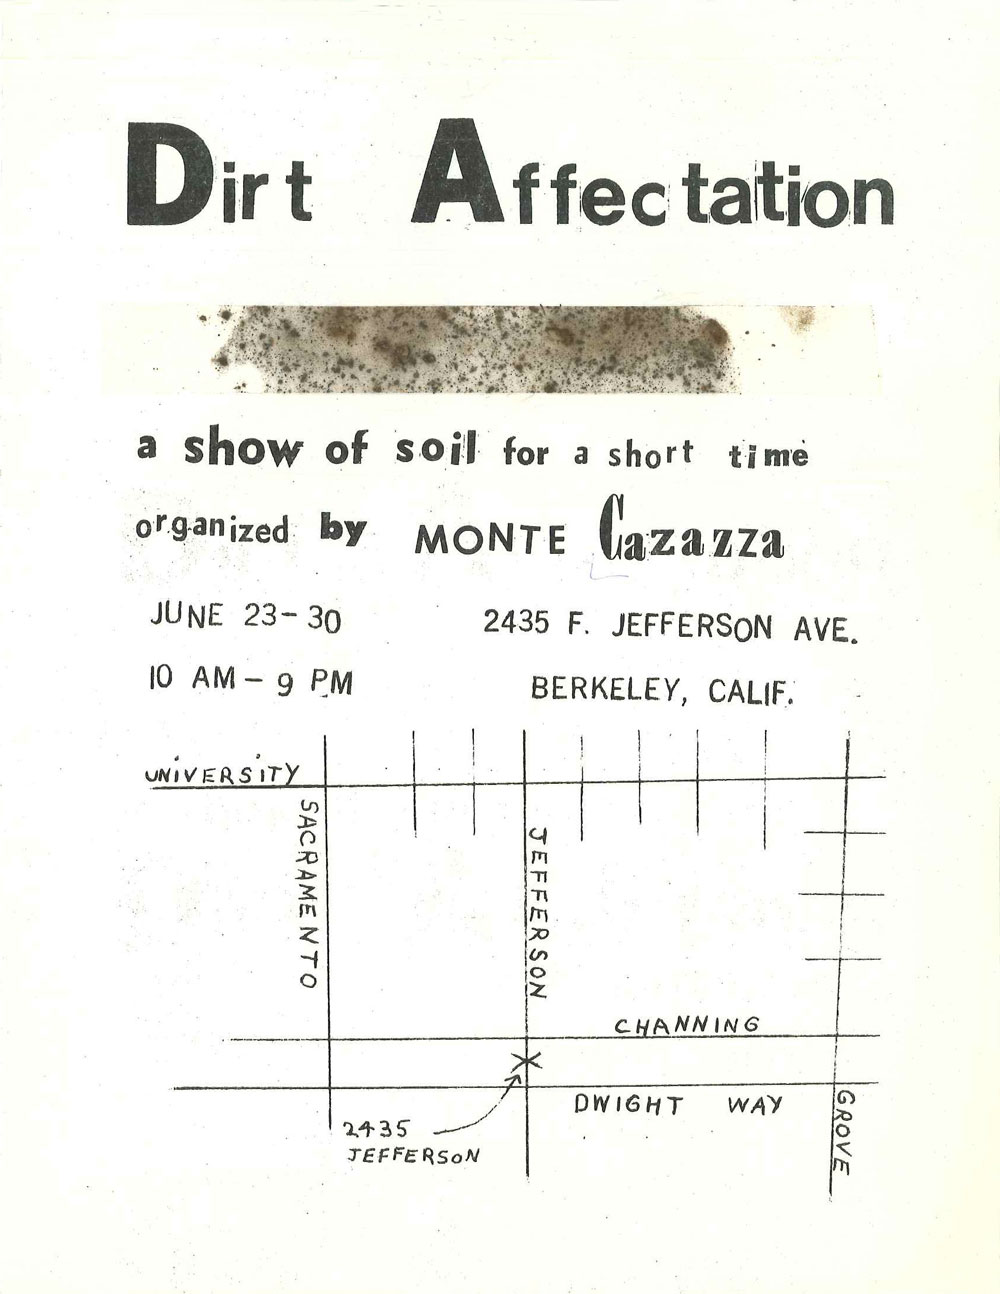 _Dirt Affectation_June 1971_flyer with cellophane tape and dirt, 11 x 8 1/2""